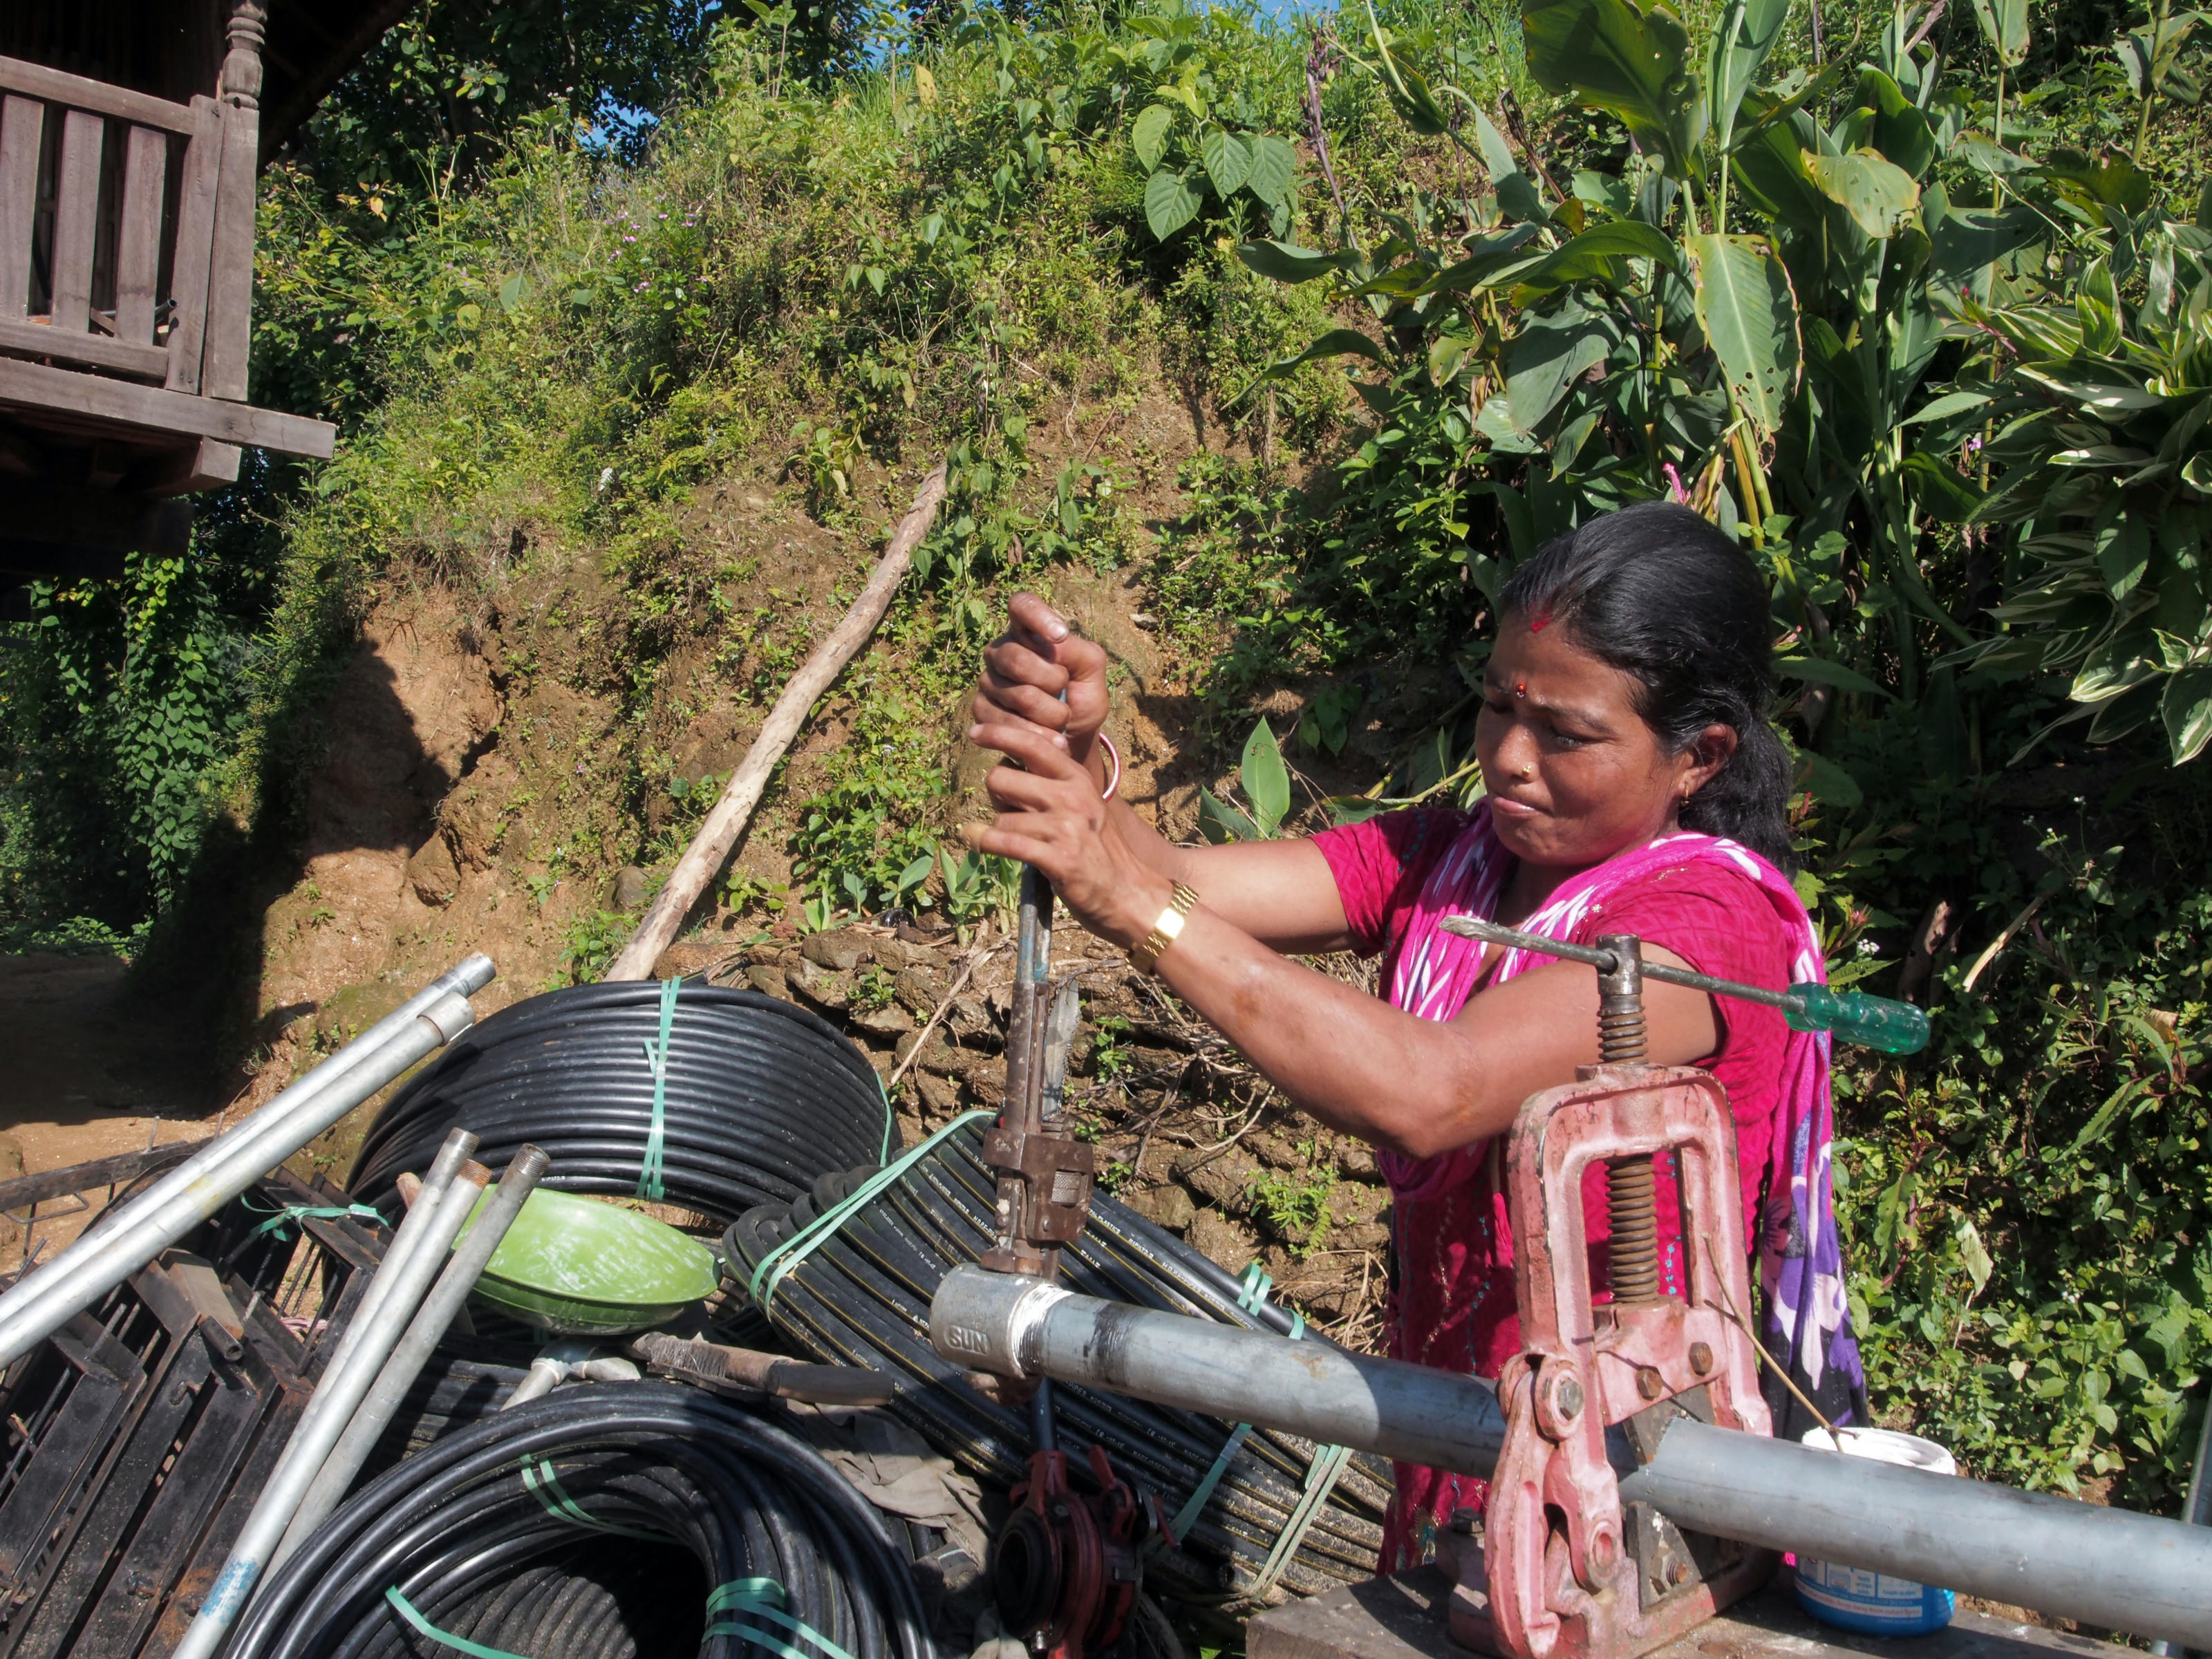 Care taker- Laxmi Bhujel, 29, preparing the pipe fittings. Sajbote Siruwani, Hardeni VDC, Udayapur, Nepal, Sep 2014